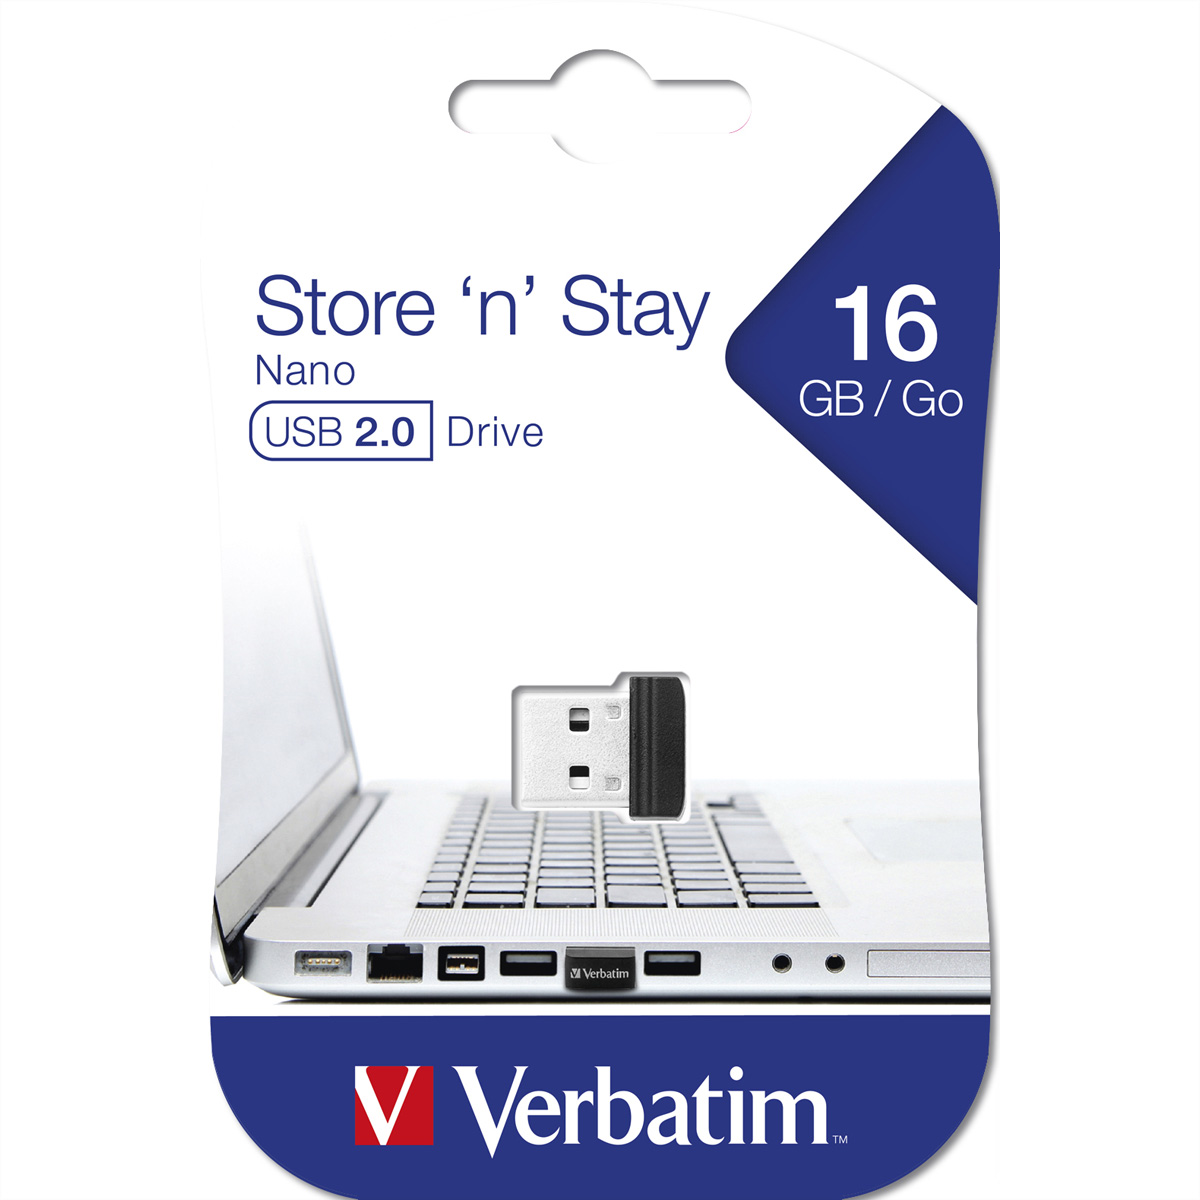 VERBATIM Store ''n'' Stay Nano USB 2.0, 16GB